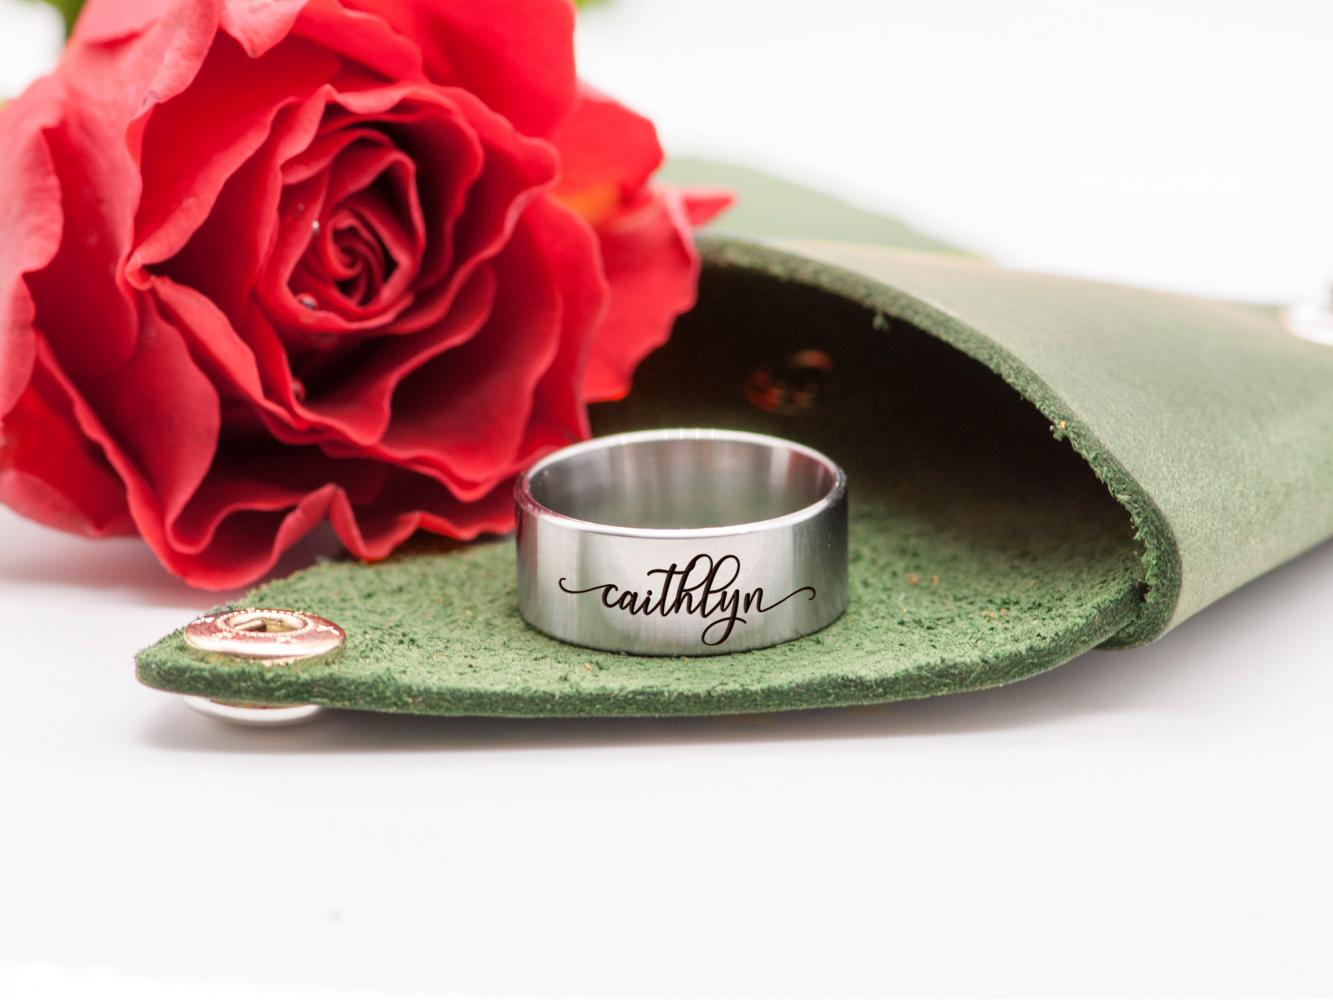 Custom Flower Ring Personalized Jewelry Gift for Her Women Dainty Ring Unique Stainless Steel Ring 8mm in Leather Case Engagement Gift